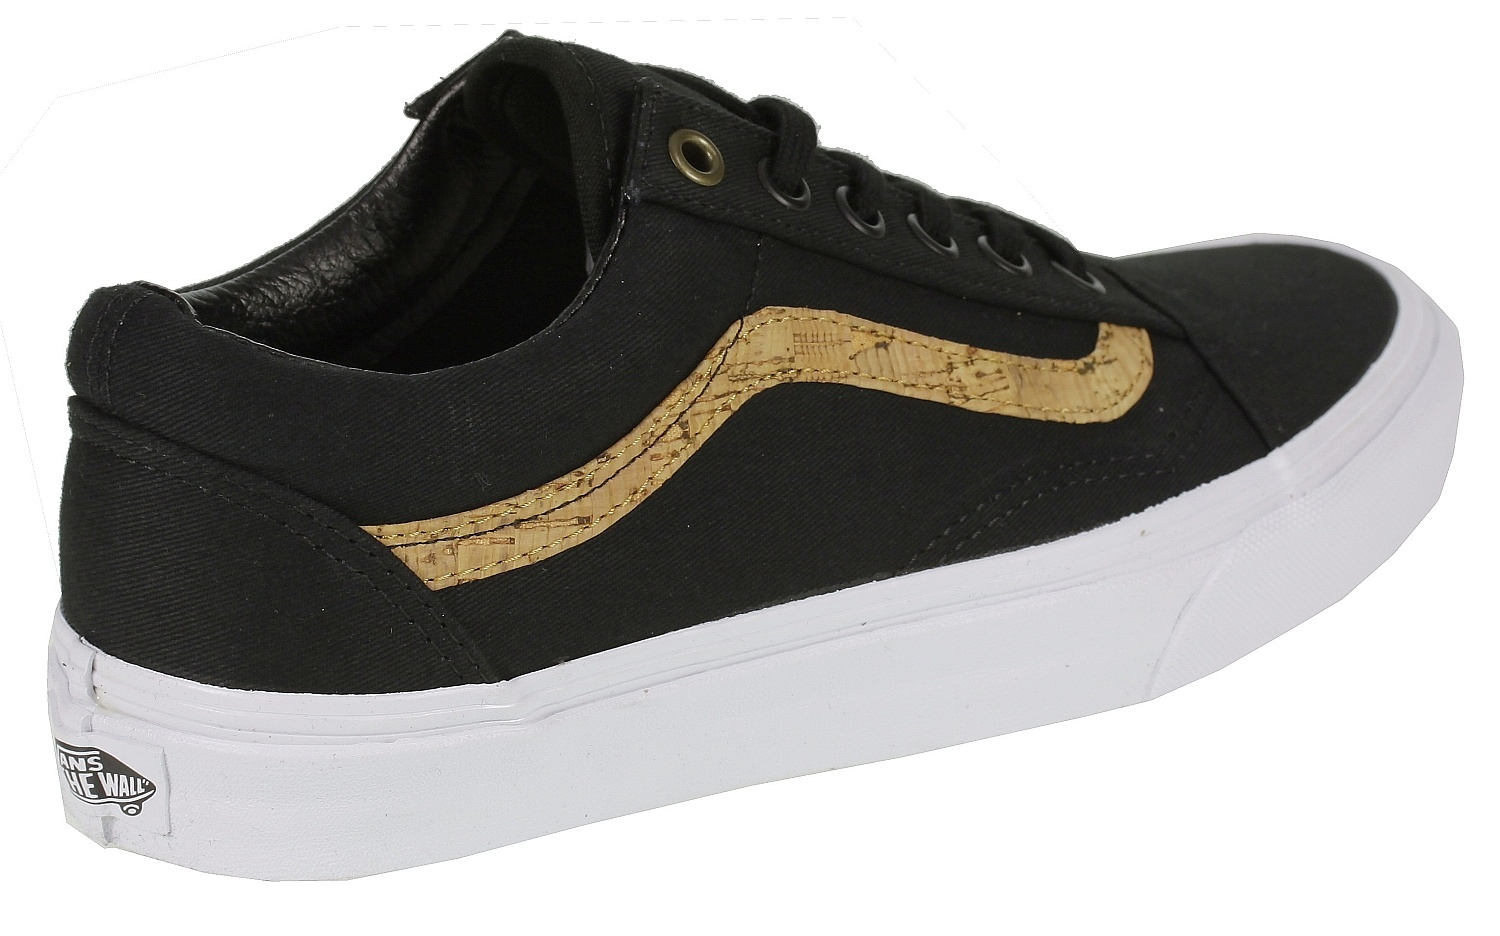 boty Vans Old Skool - Cork Twill/Black - Snowboard shop ...